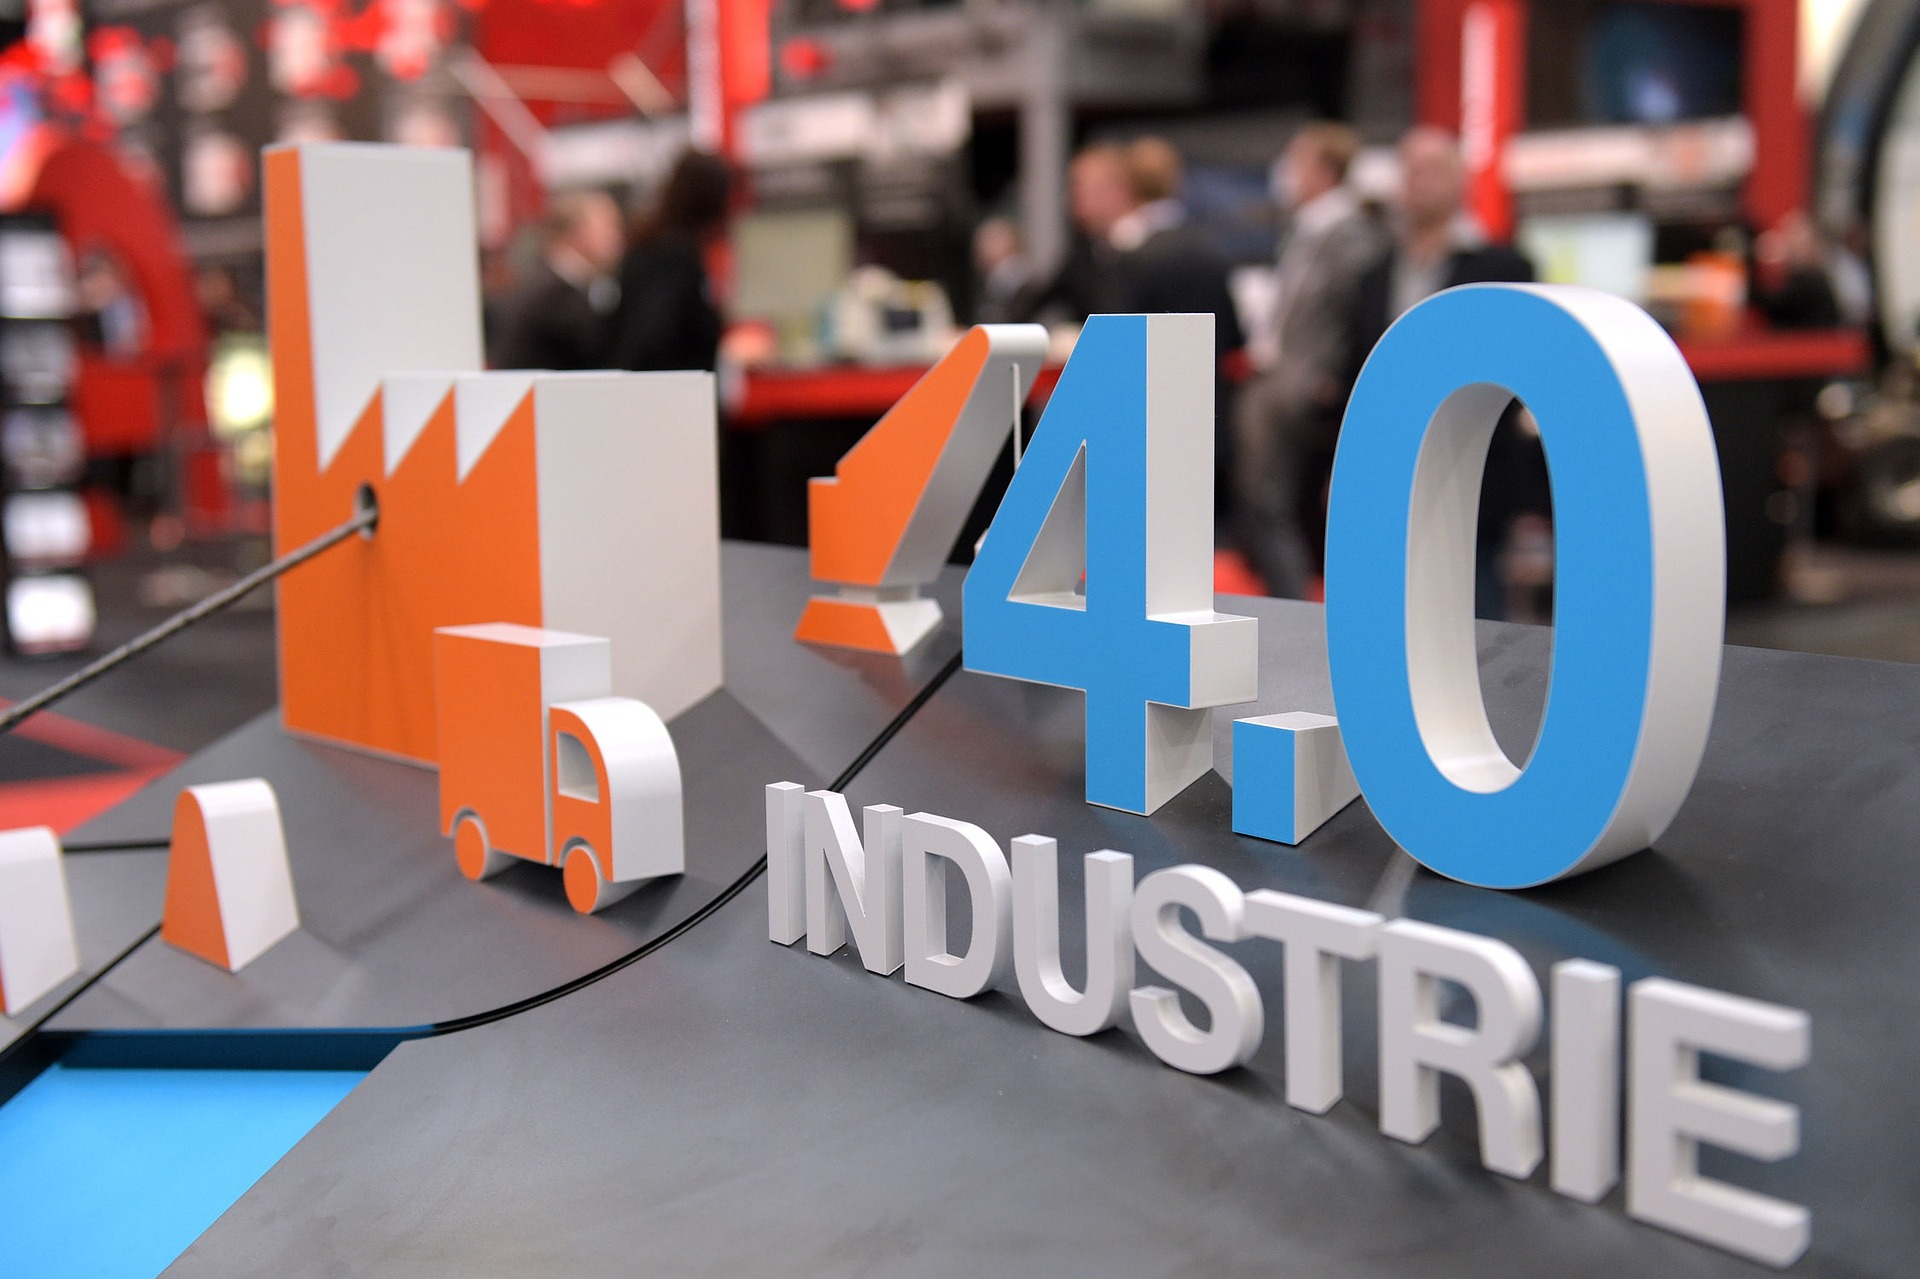 Accessible Industry 4.0